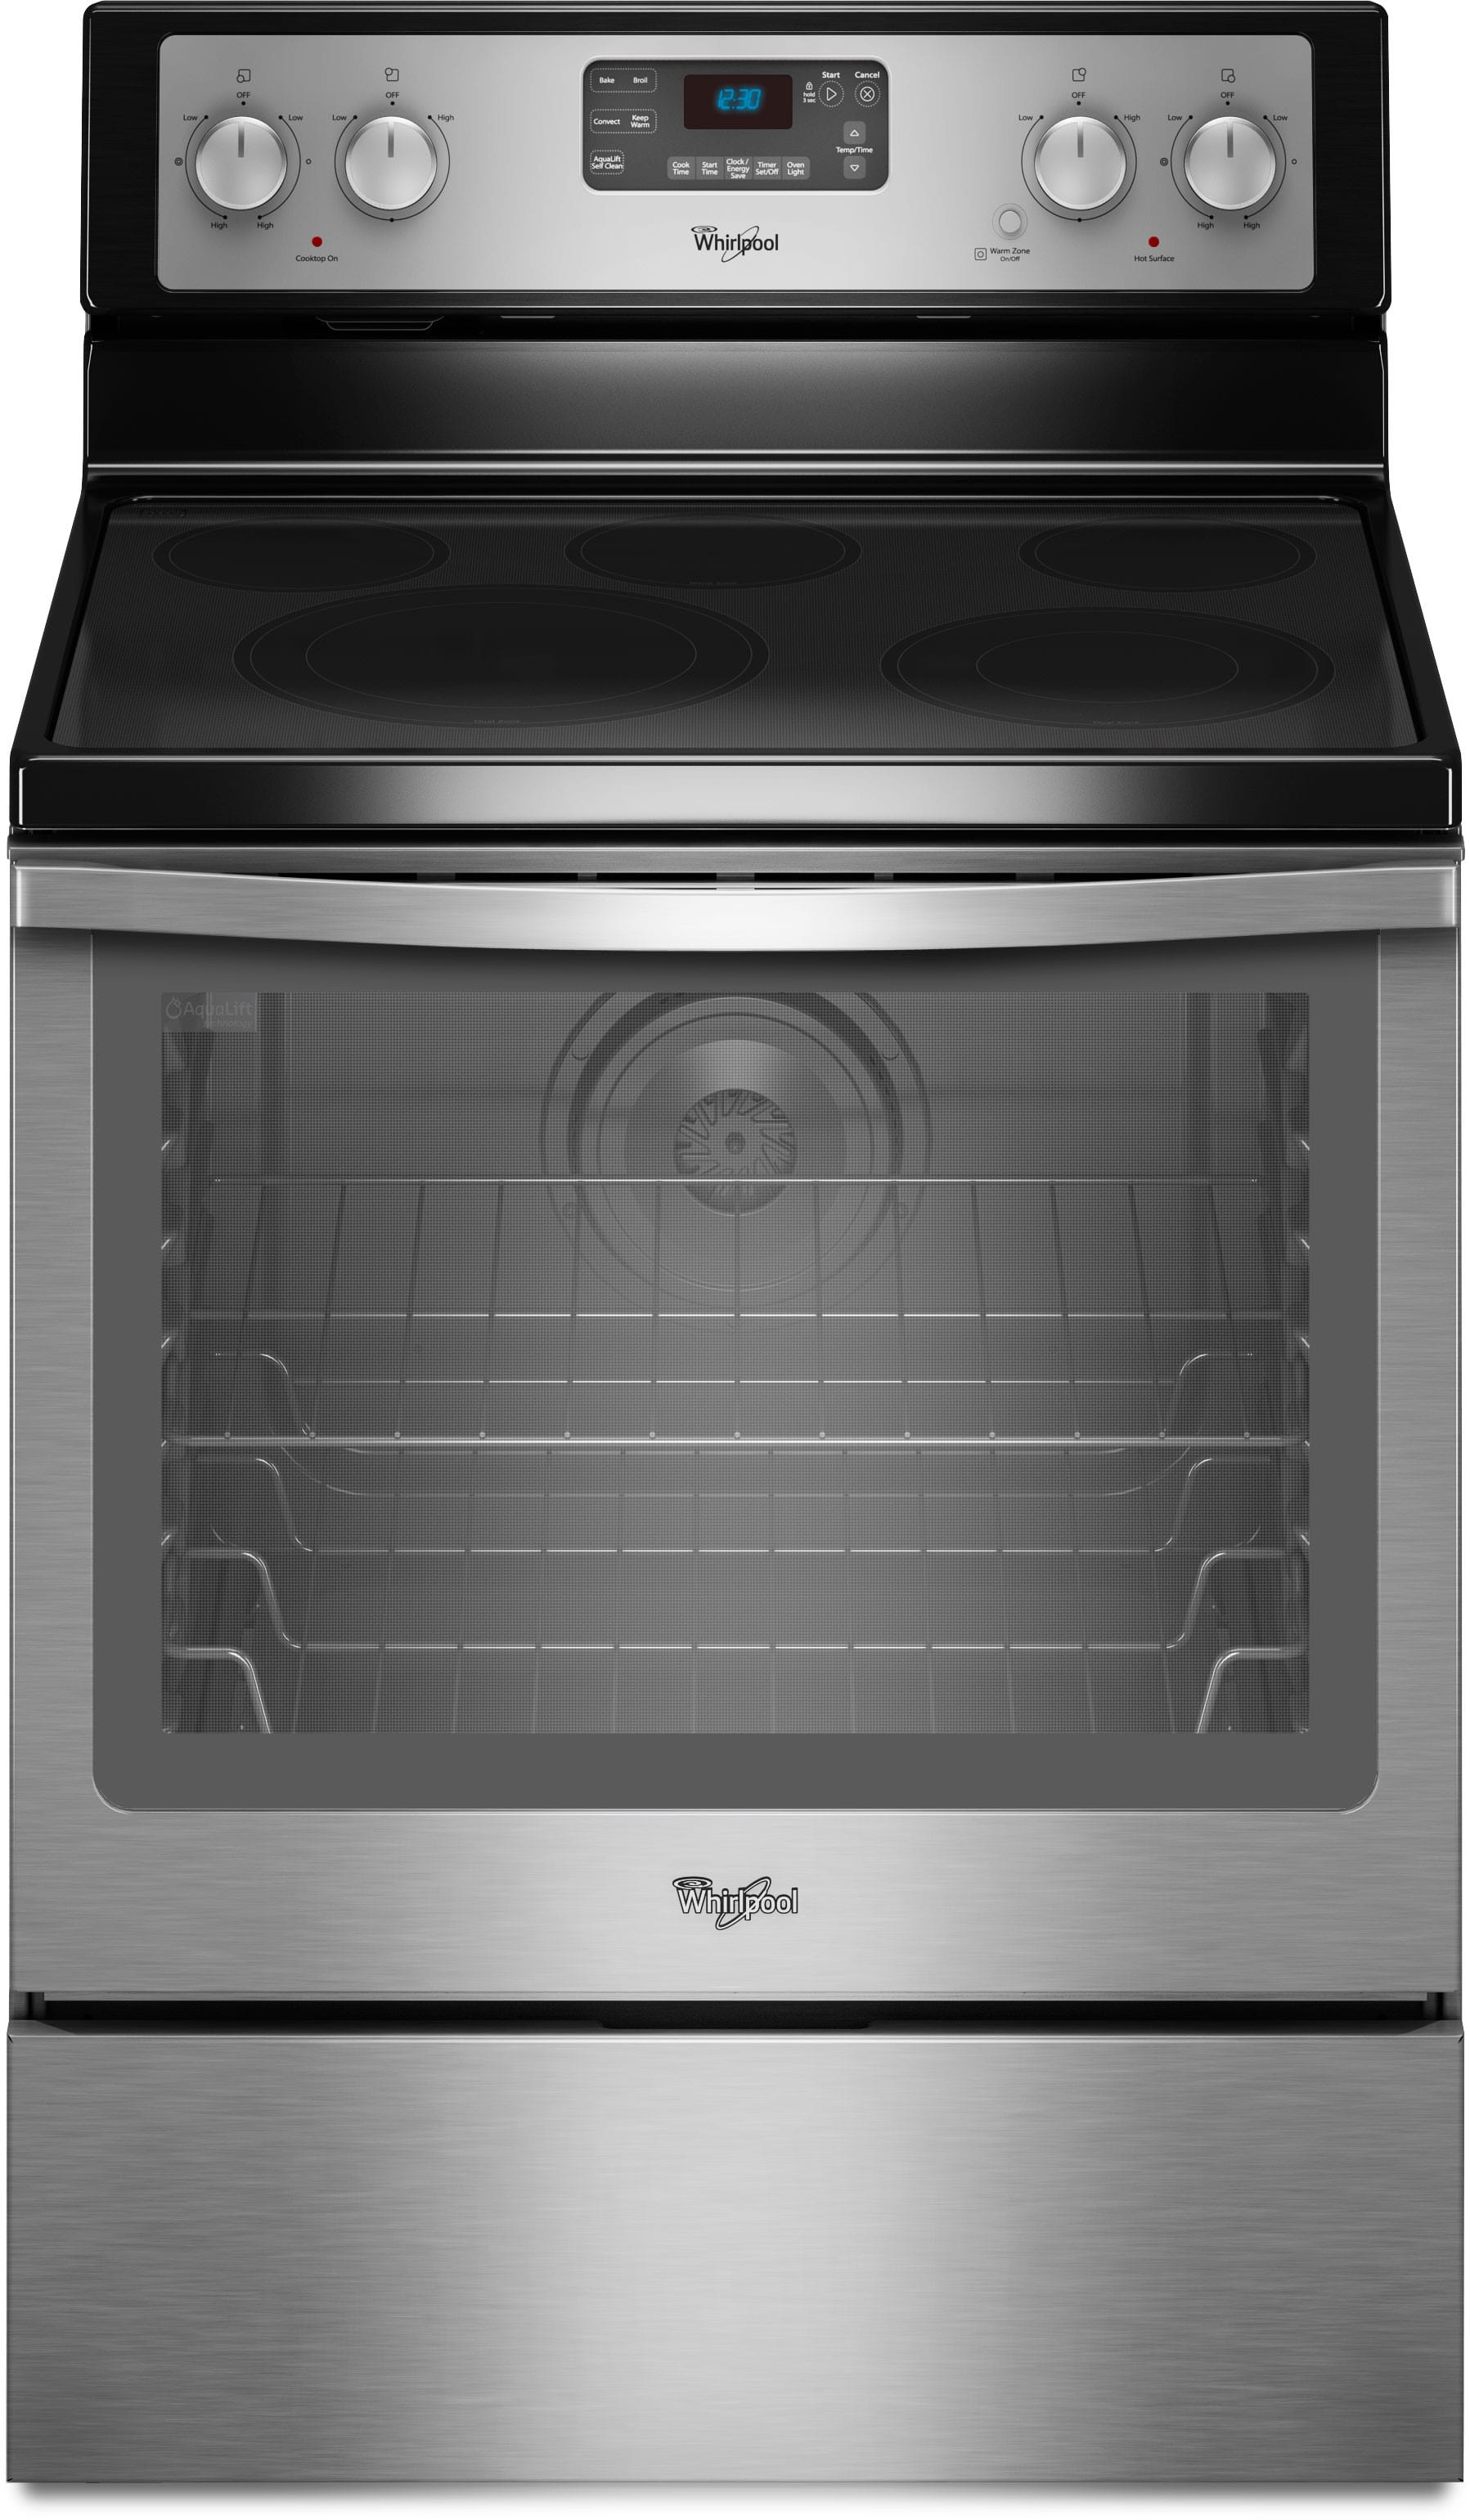 Whirlpool Wfe540h0as 30 Inch Freestanding Smoothtop